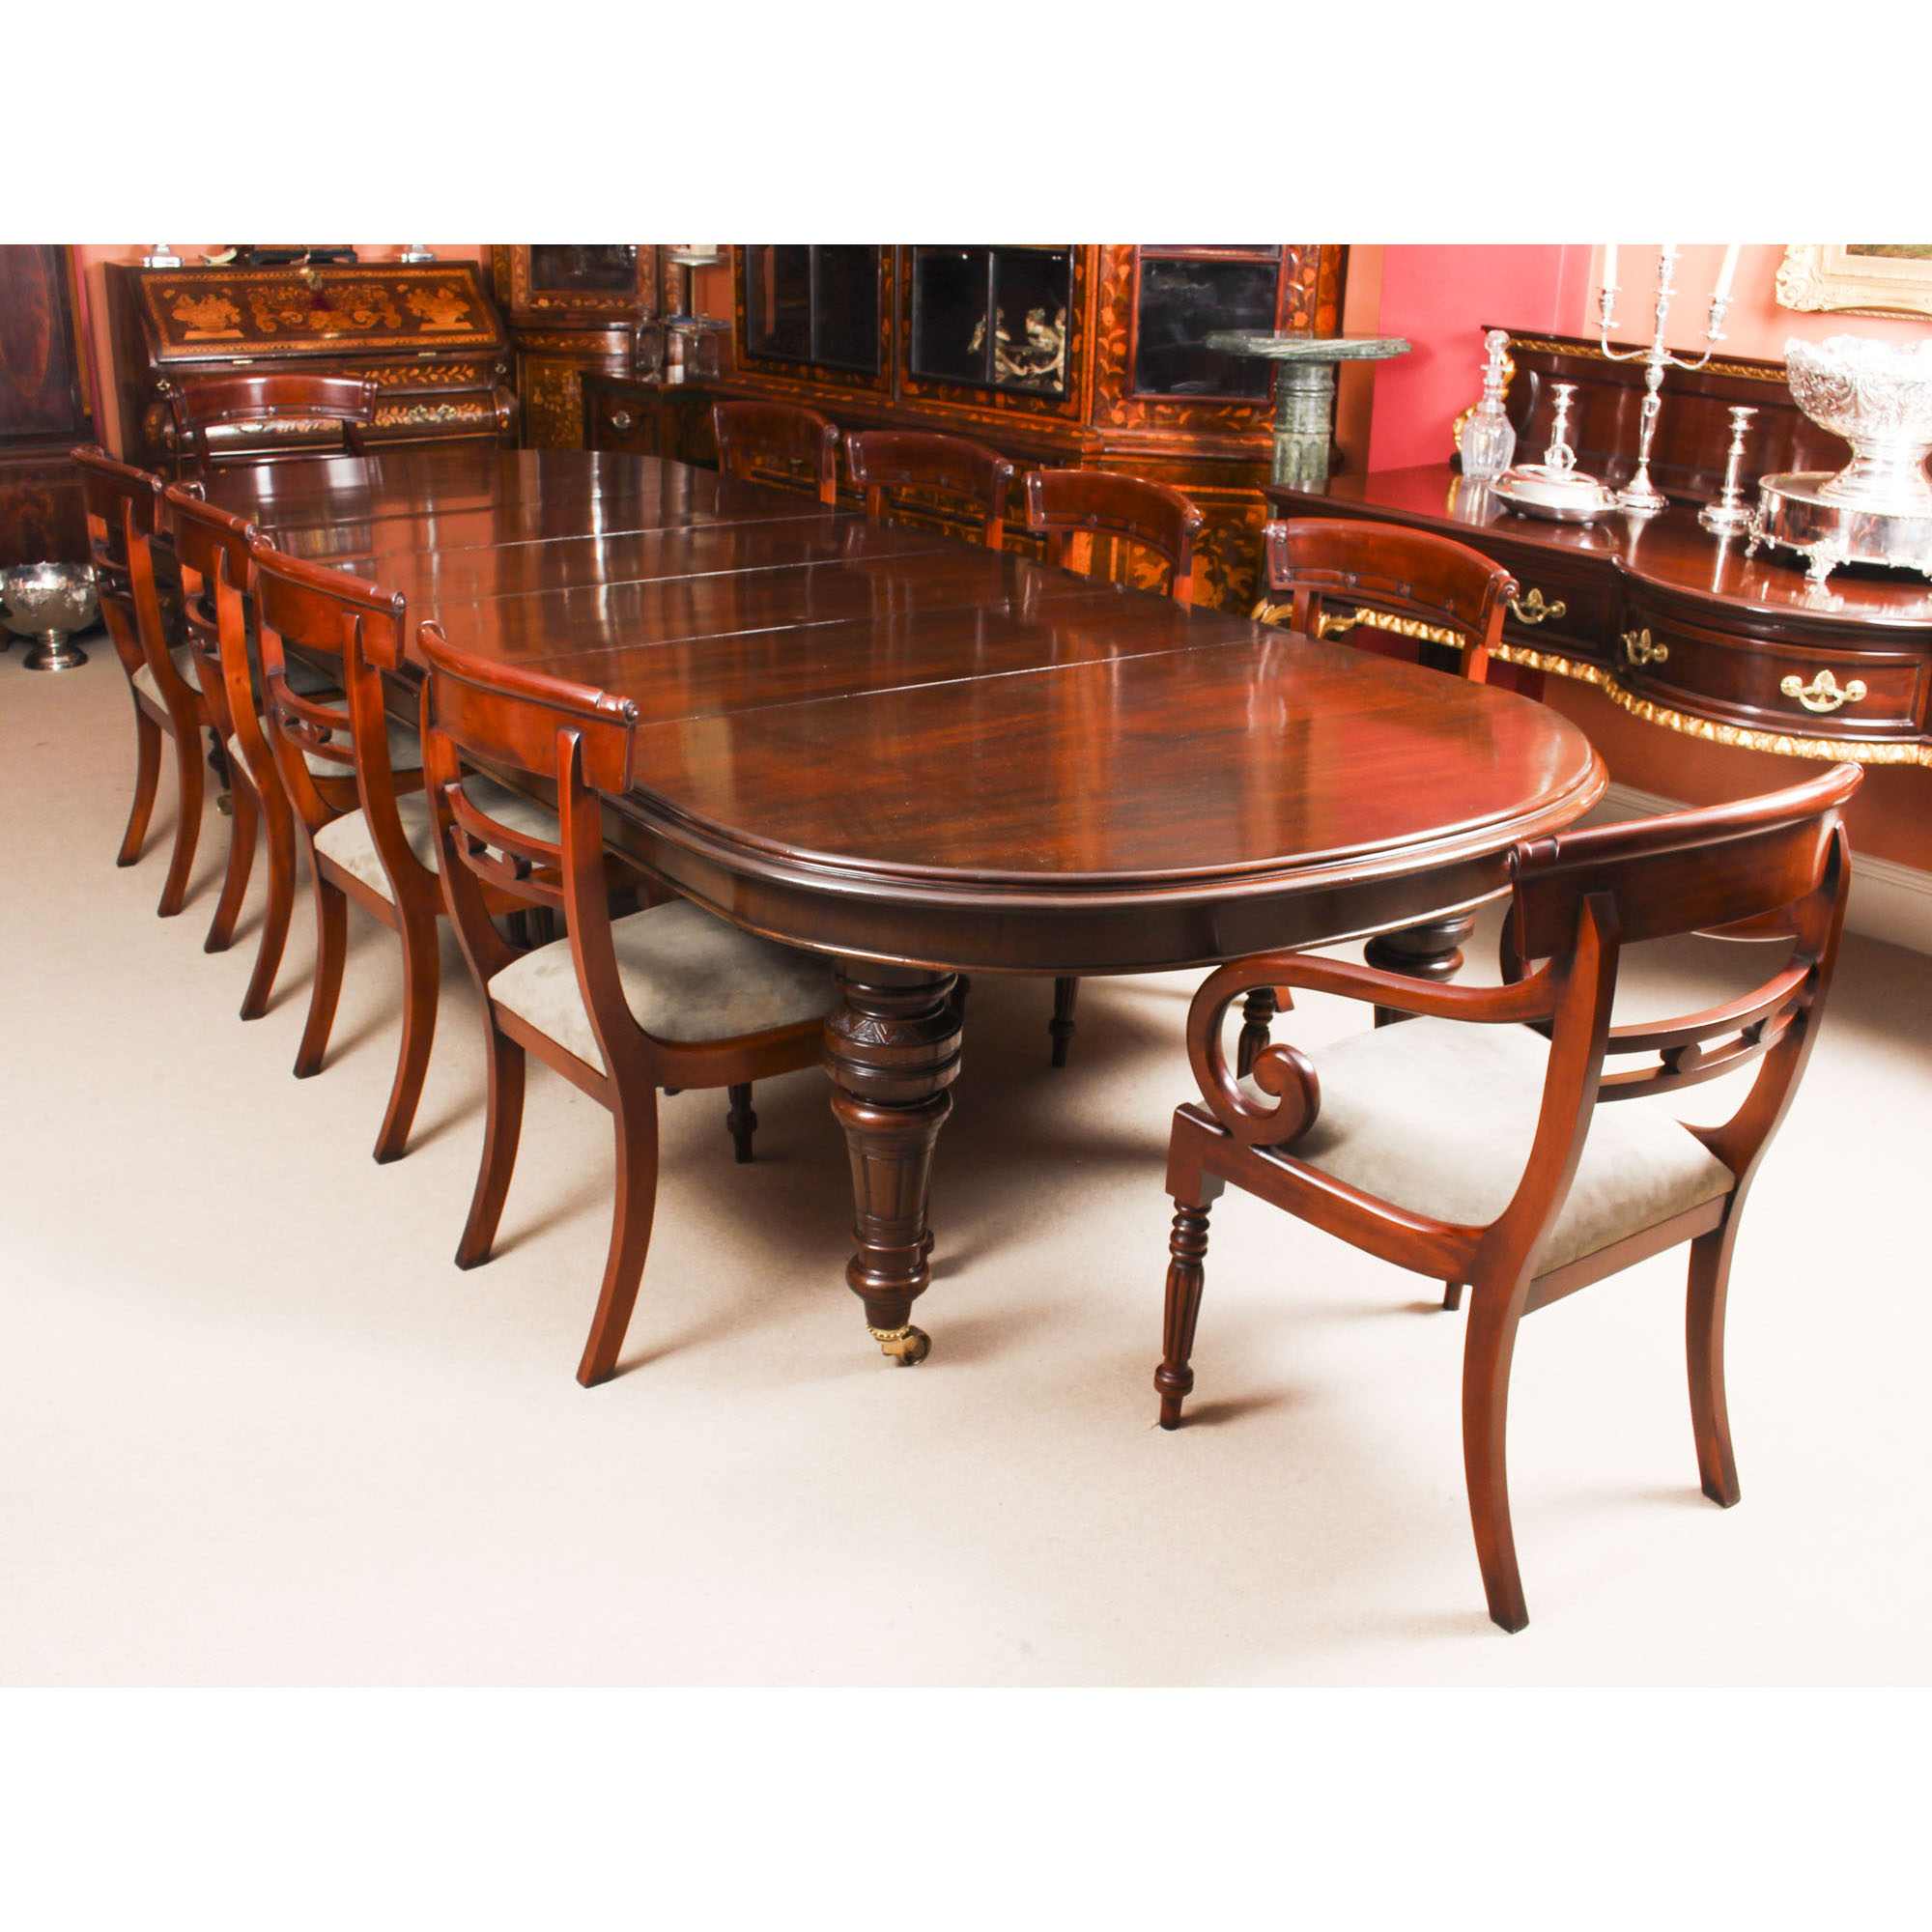 Antique Victorian Mahogany Dining Table C1870 & 10 Chairs Throughout Newest Rustic Mahogany Extending Dining Tables (View 15 of 25)